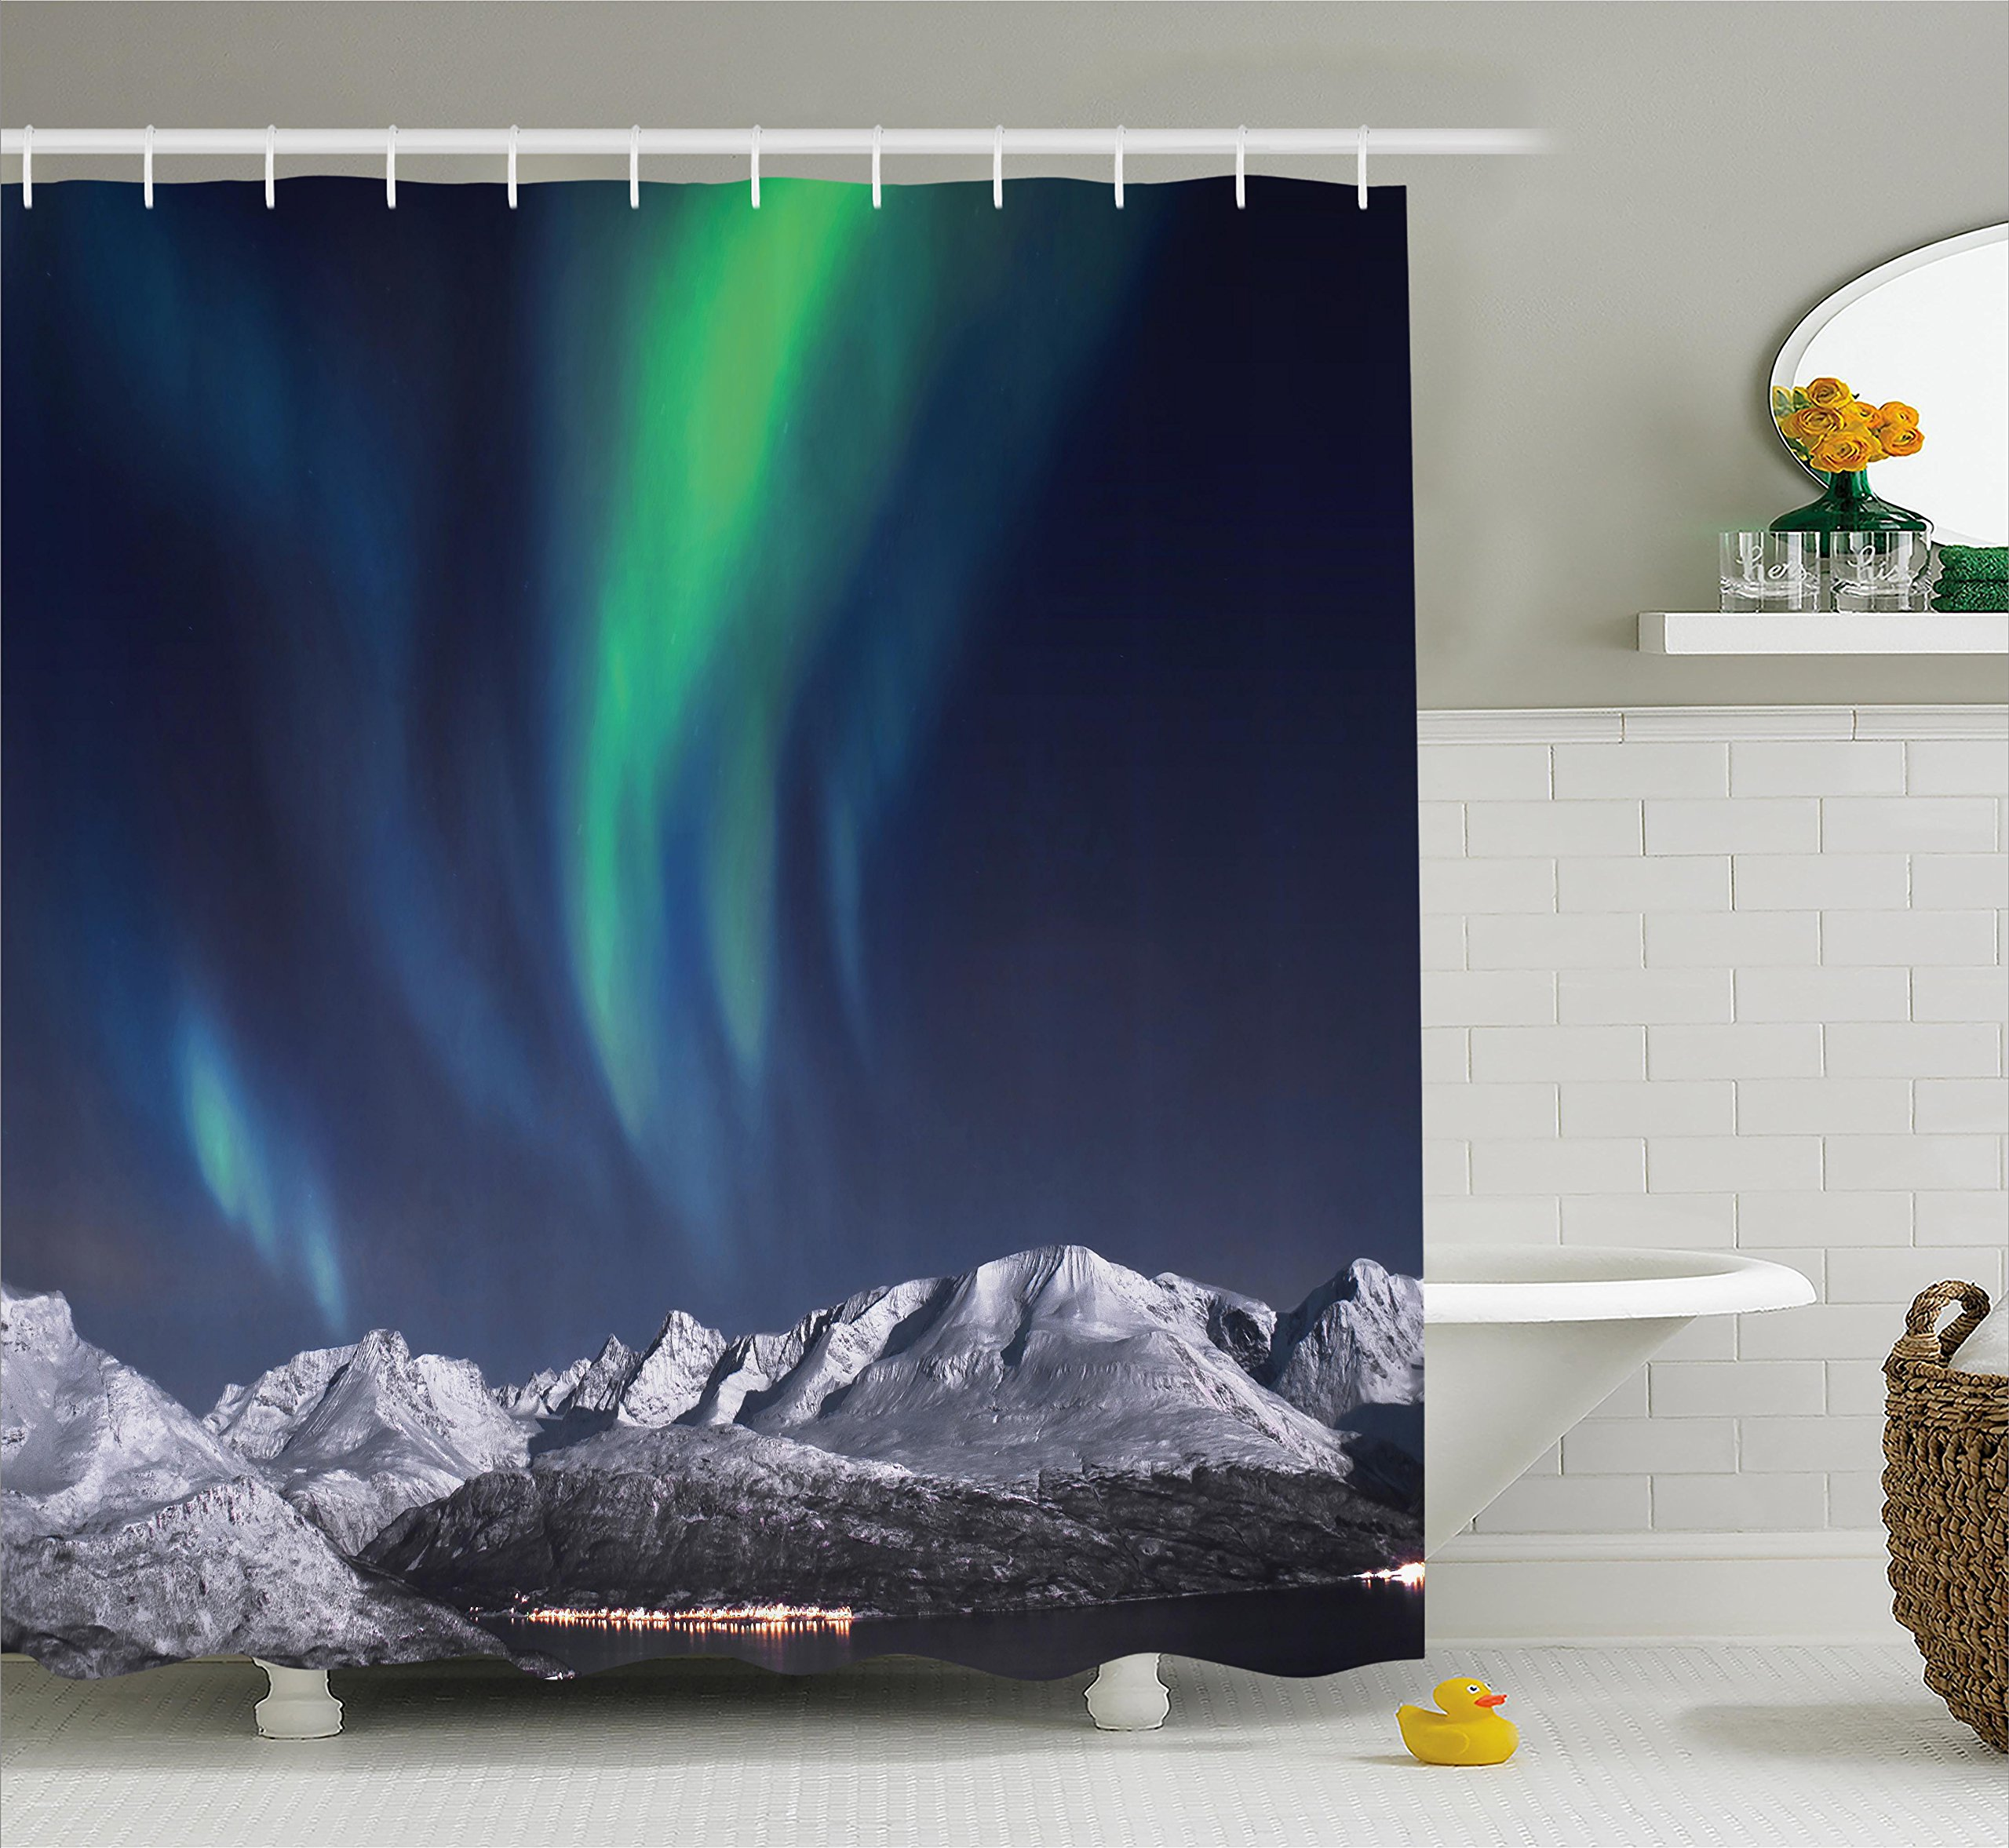 Ambesonne Sky Decor Shower Curtain, Northern Lights Aurora Over Fjords Mountain at Night Norway Solar Image, Fabric Bathroom Decor Set with Hooks, 75 inches Long, Green Dark Blue